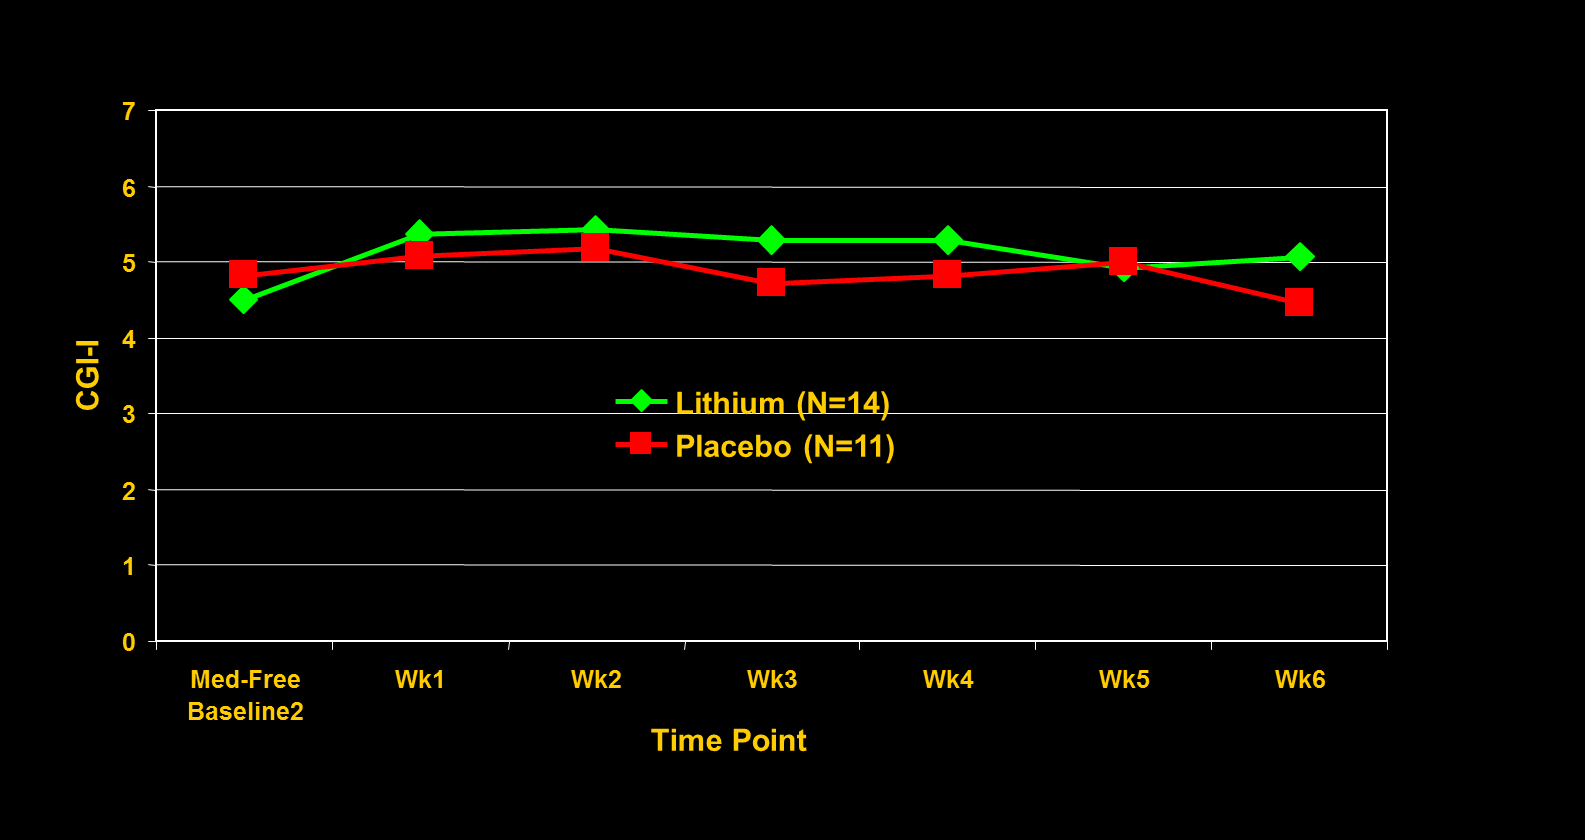 SMD Lithium RCT: